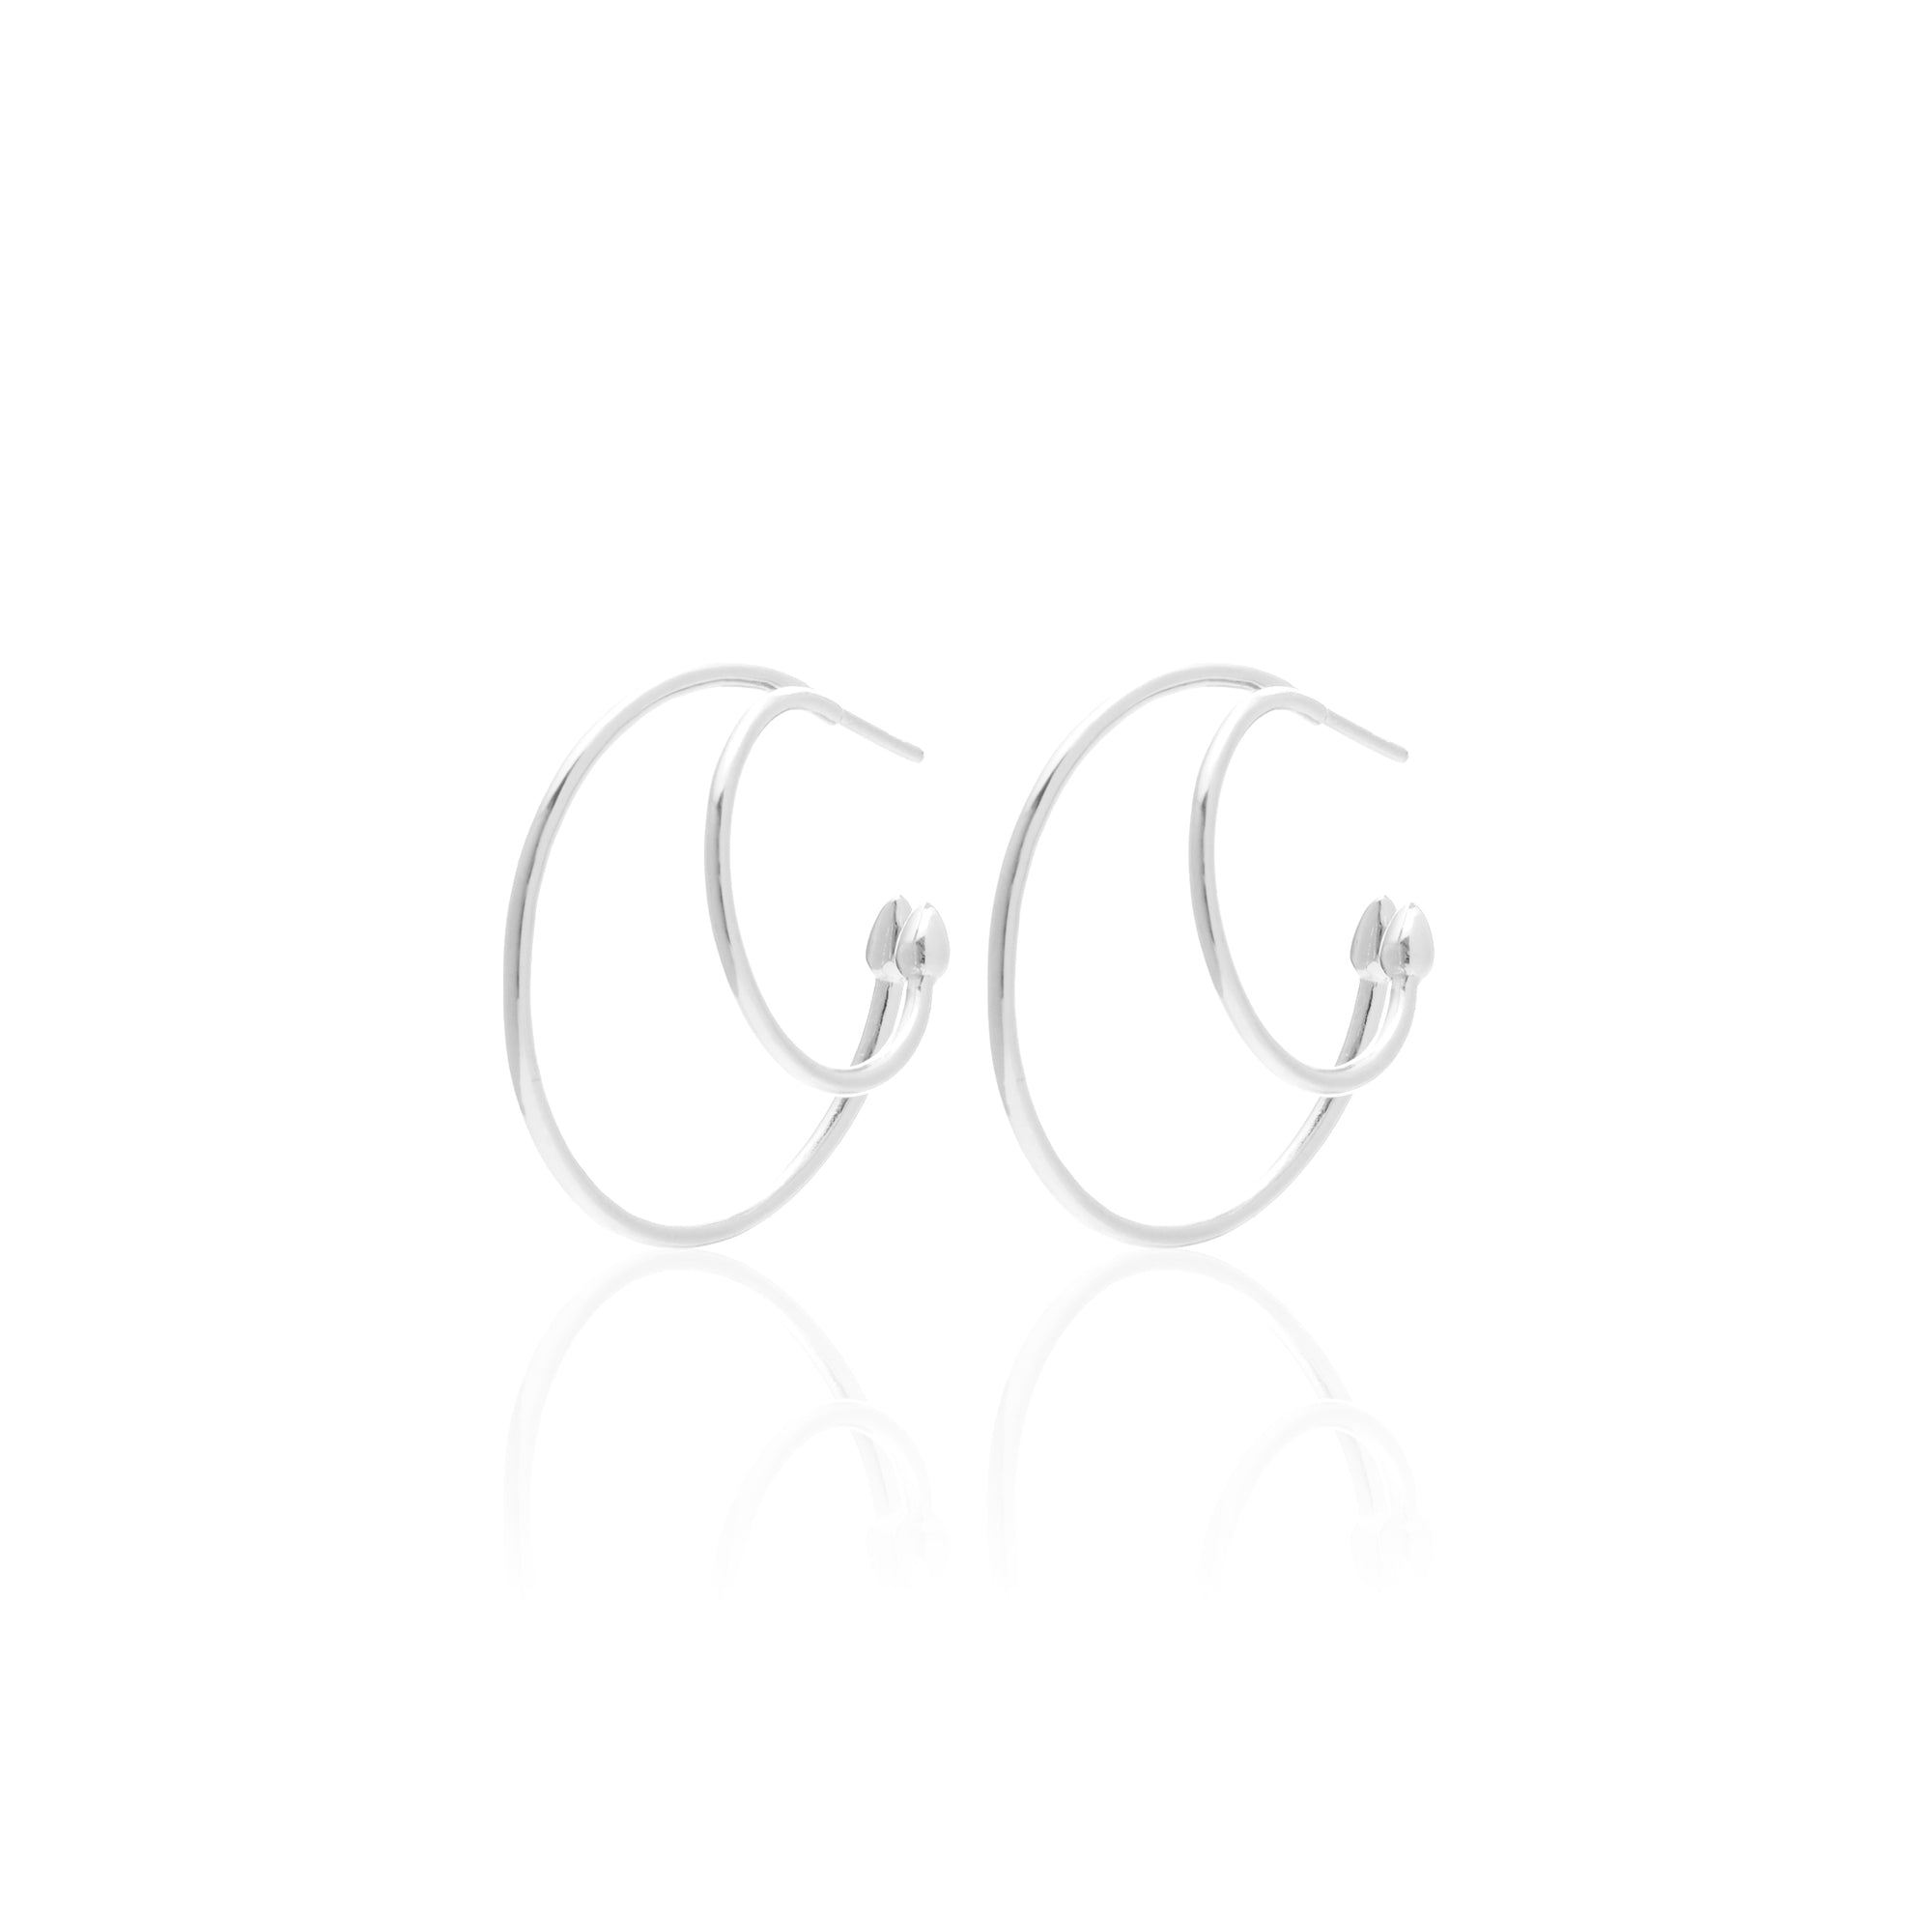 Silk & Steel Jewellery Double Hoop Double Life earrings